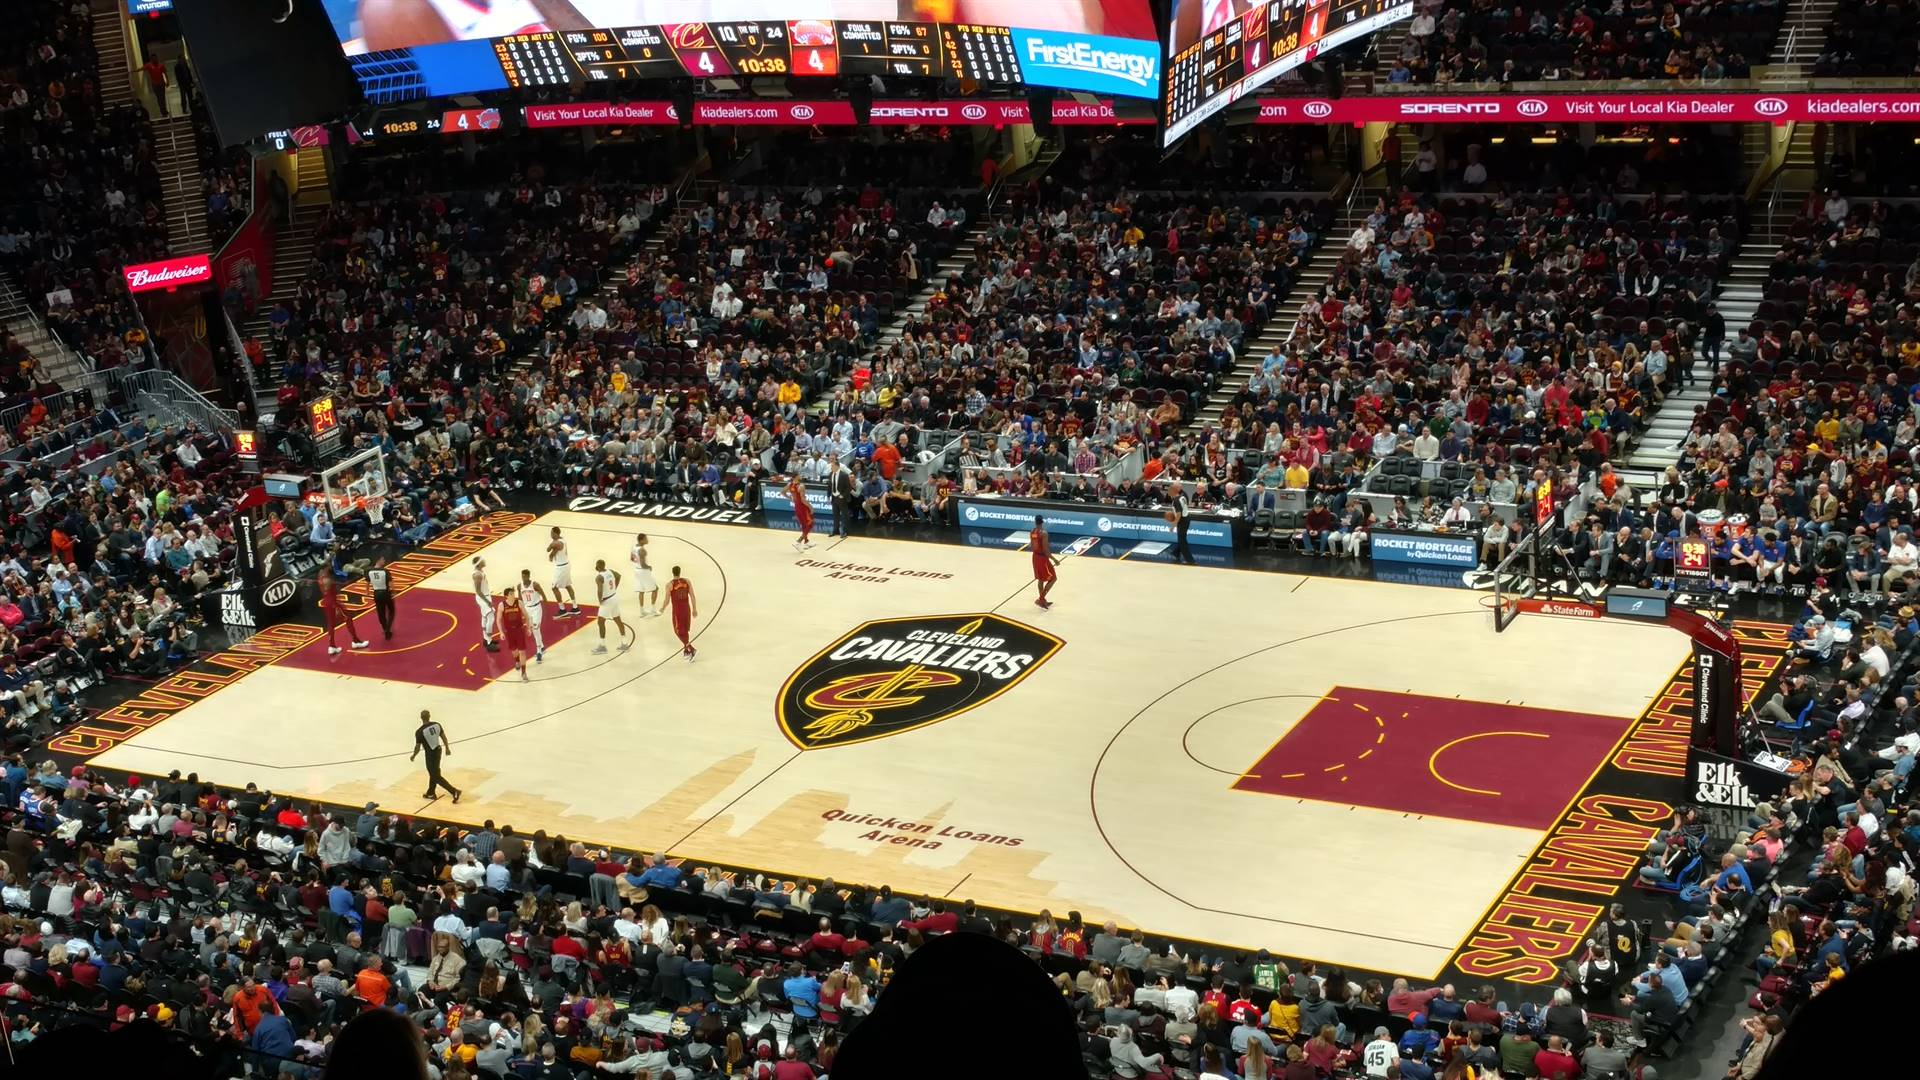 CAVS Game with FCCLA Members